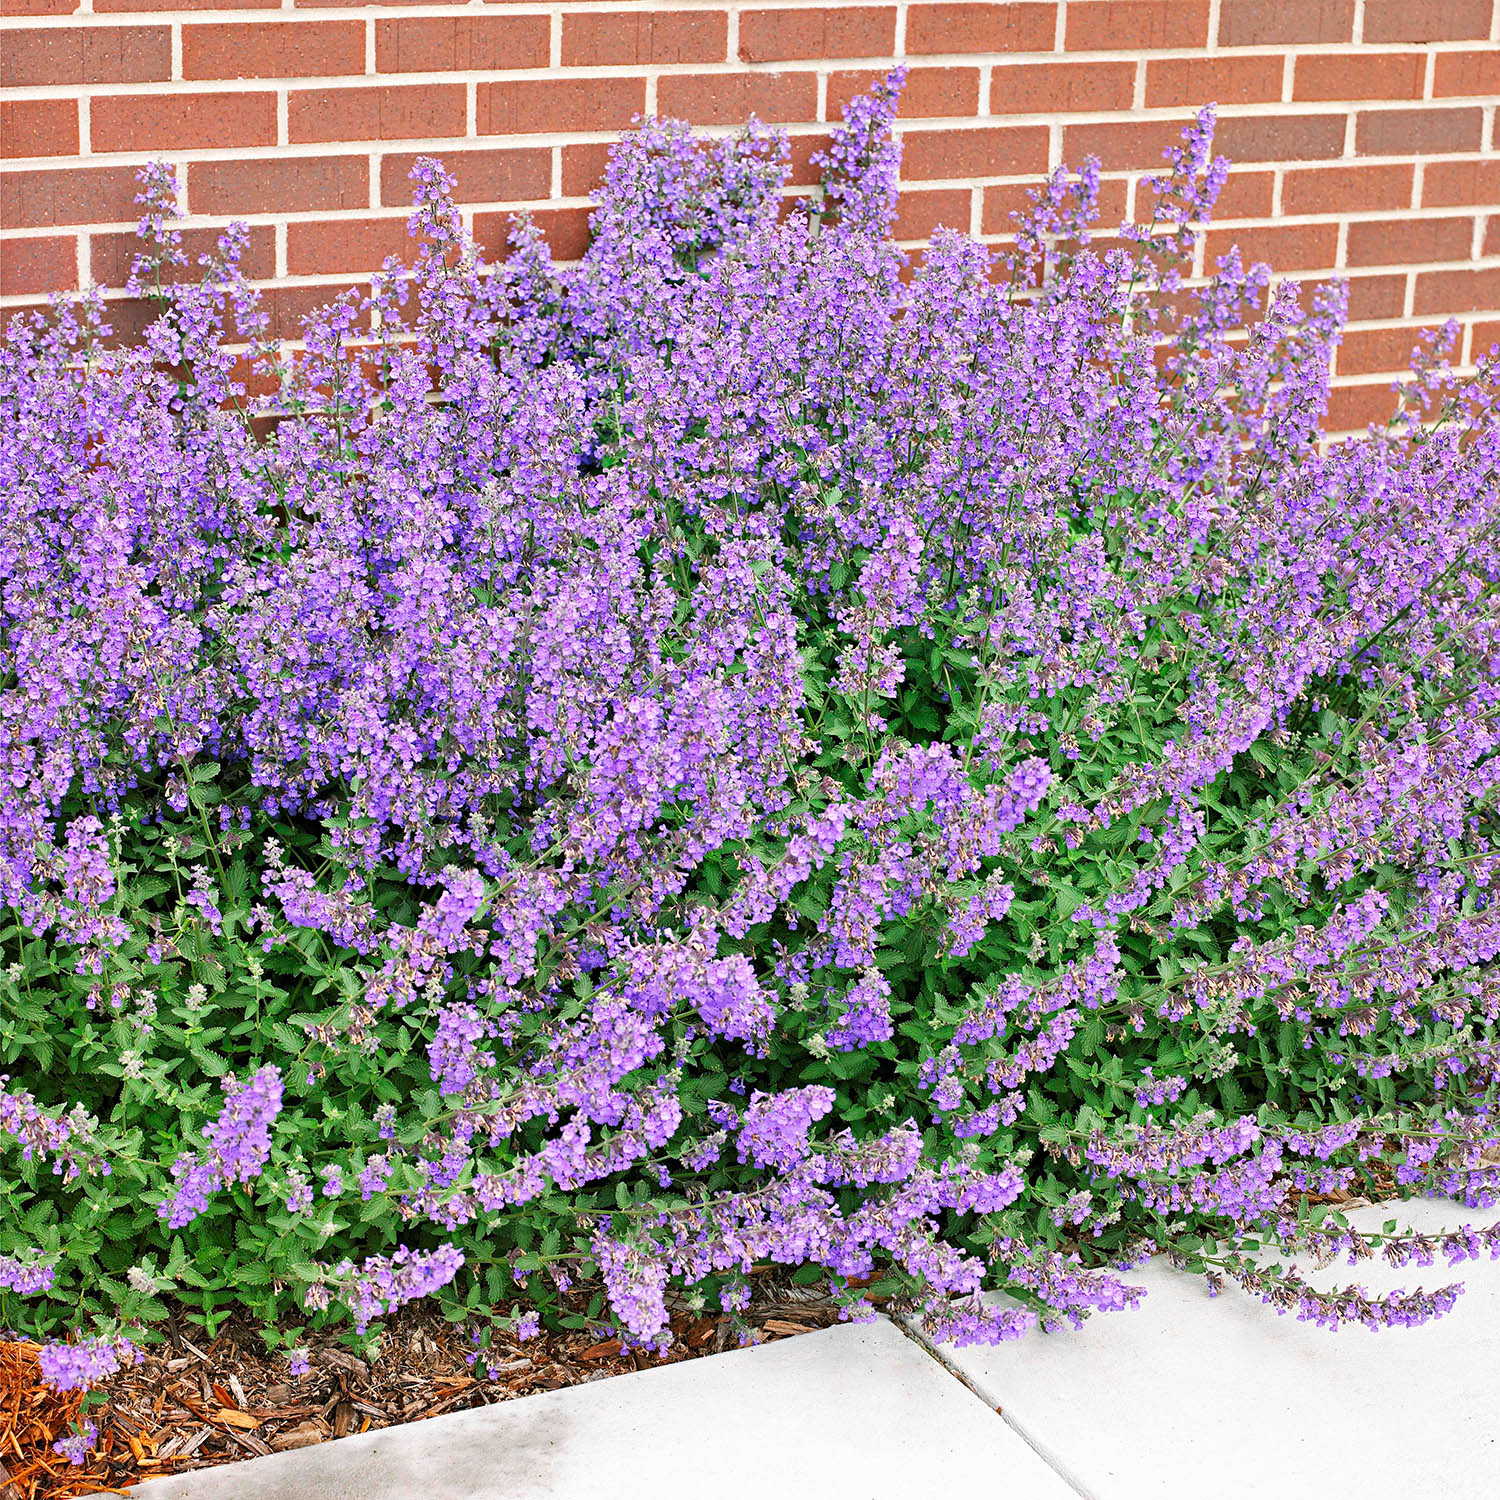 Catmint blooming in front of a brick wall